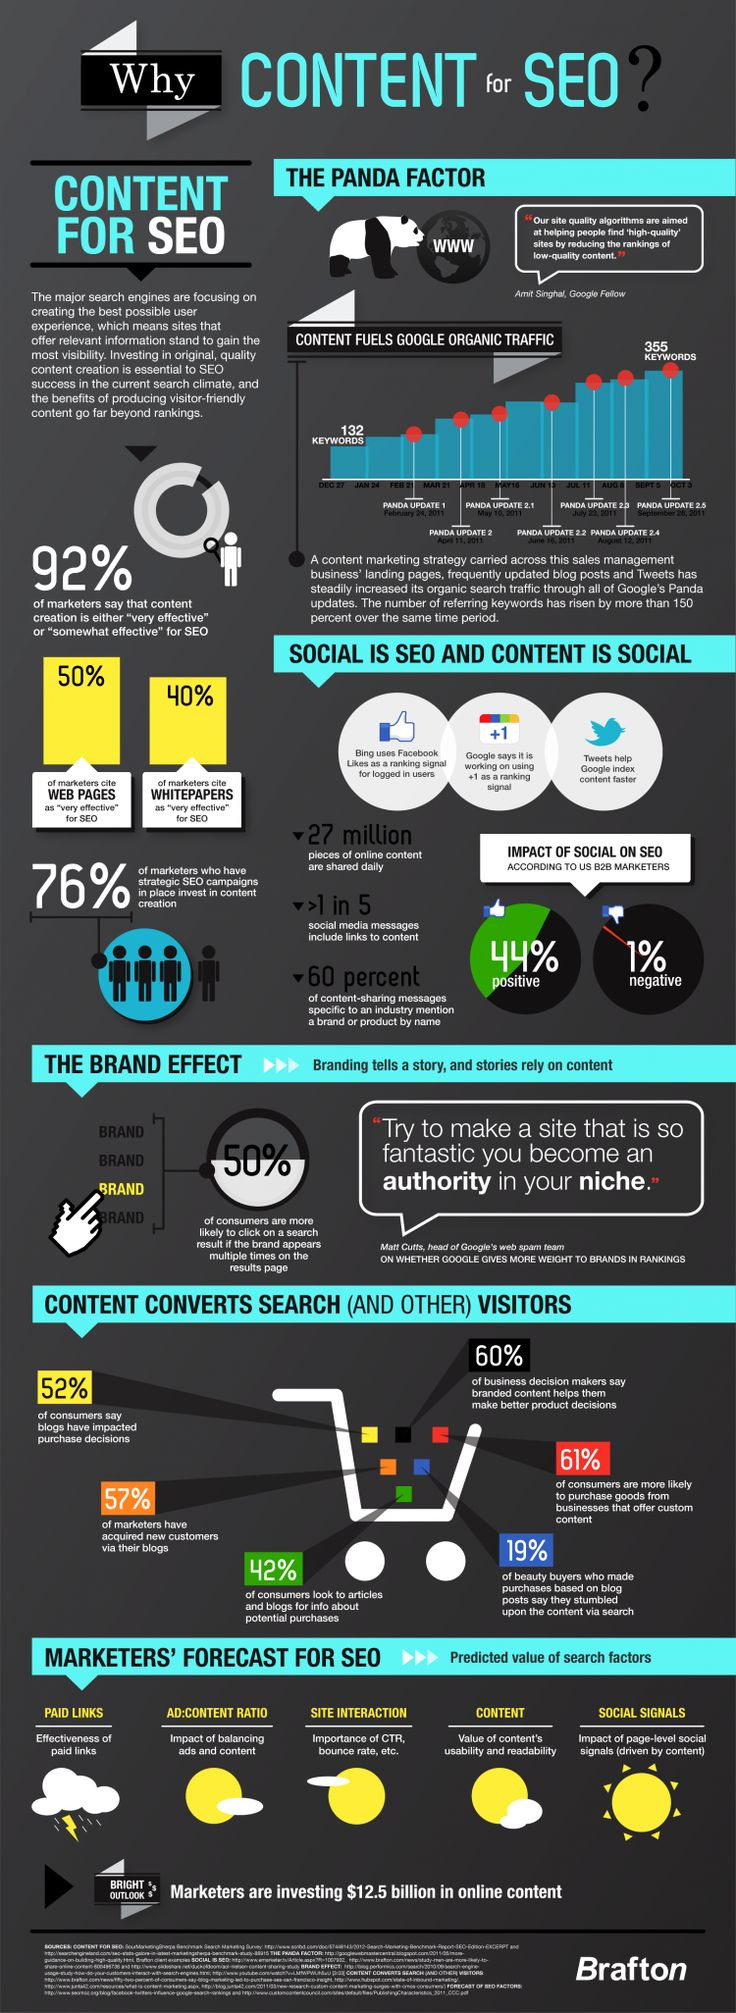 Content marketing as an SEO tactic..